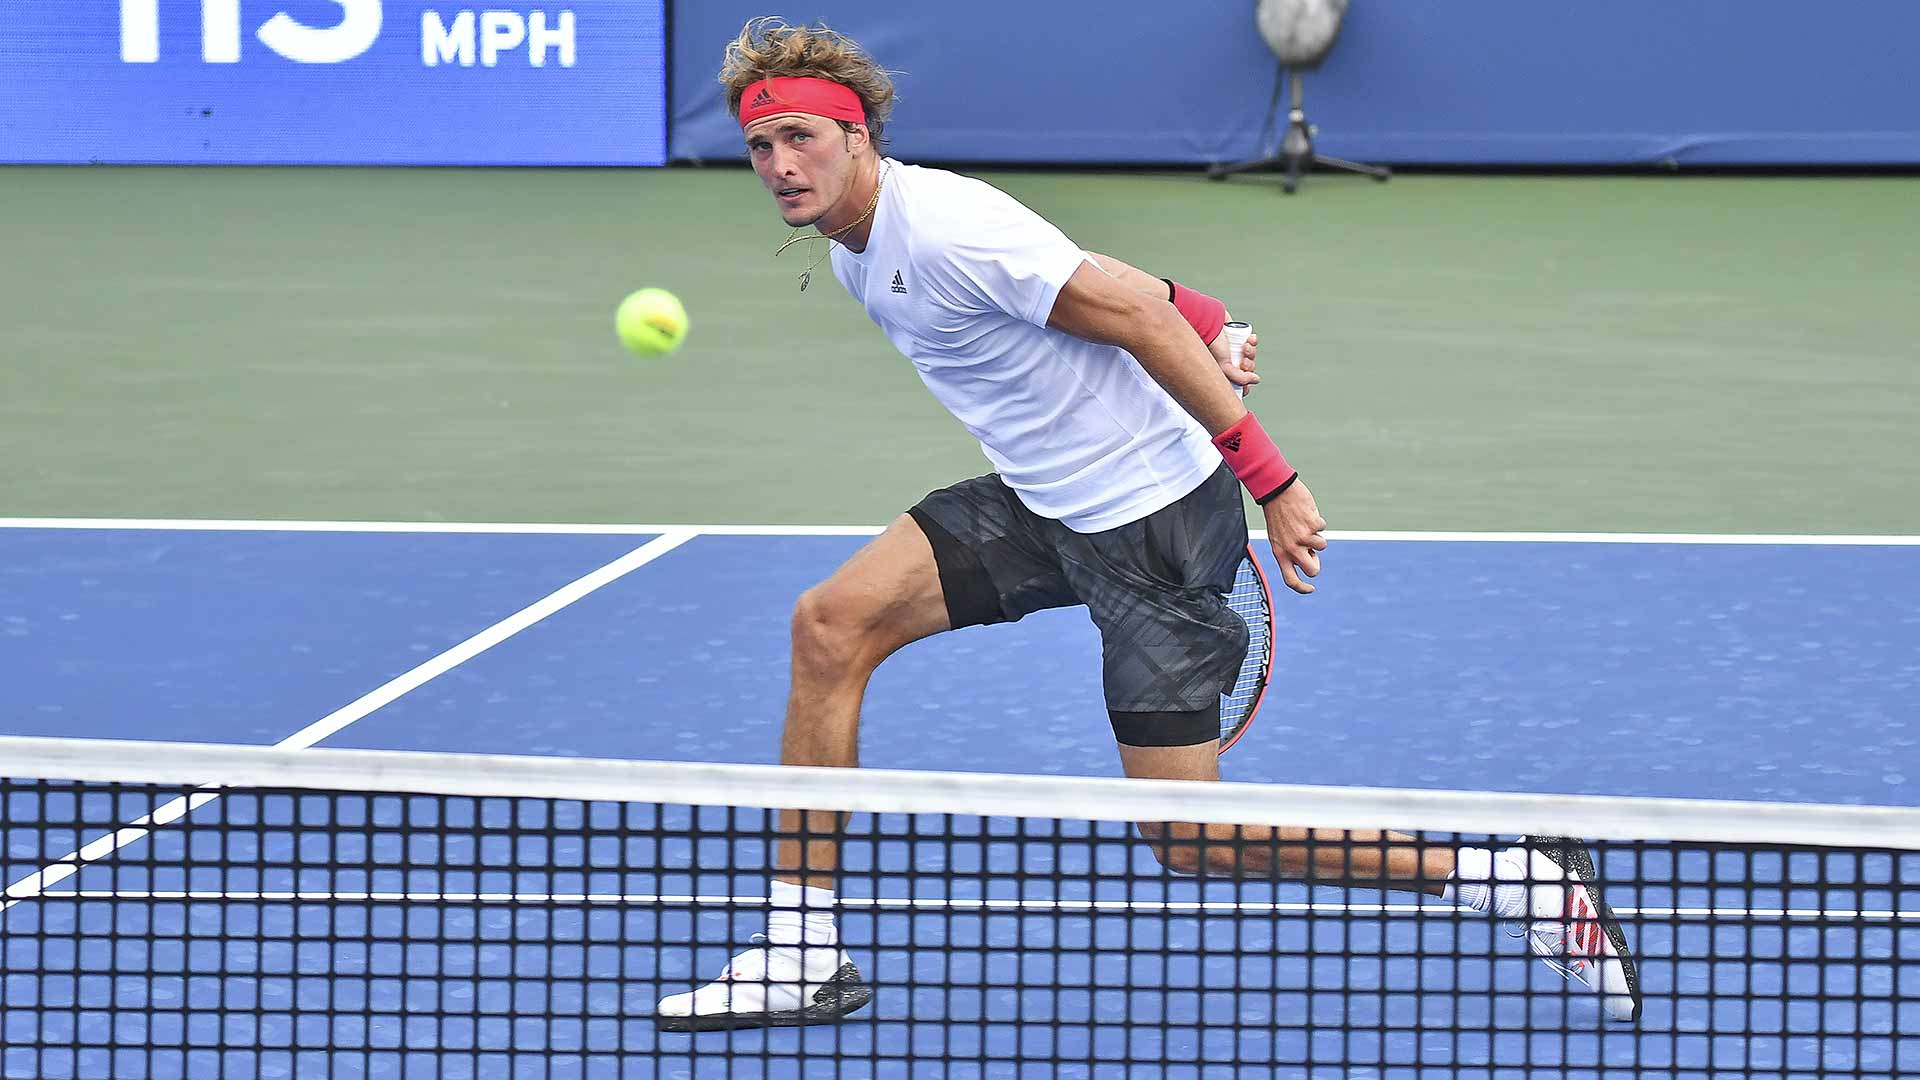 Alexander Zverev is a three-time ATP Masters 1000 champion.